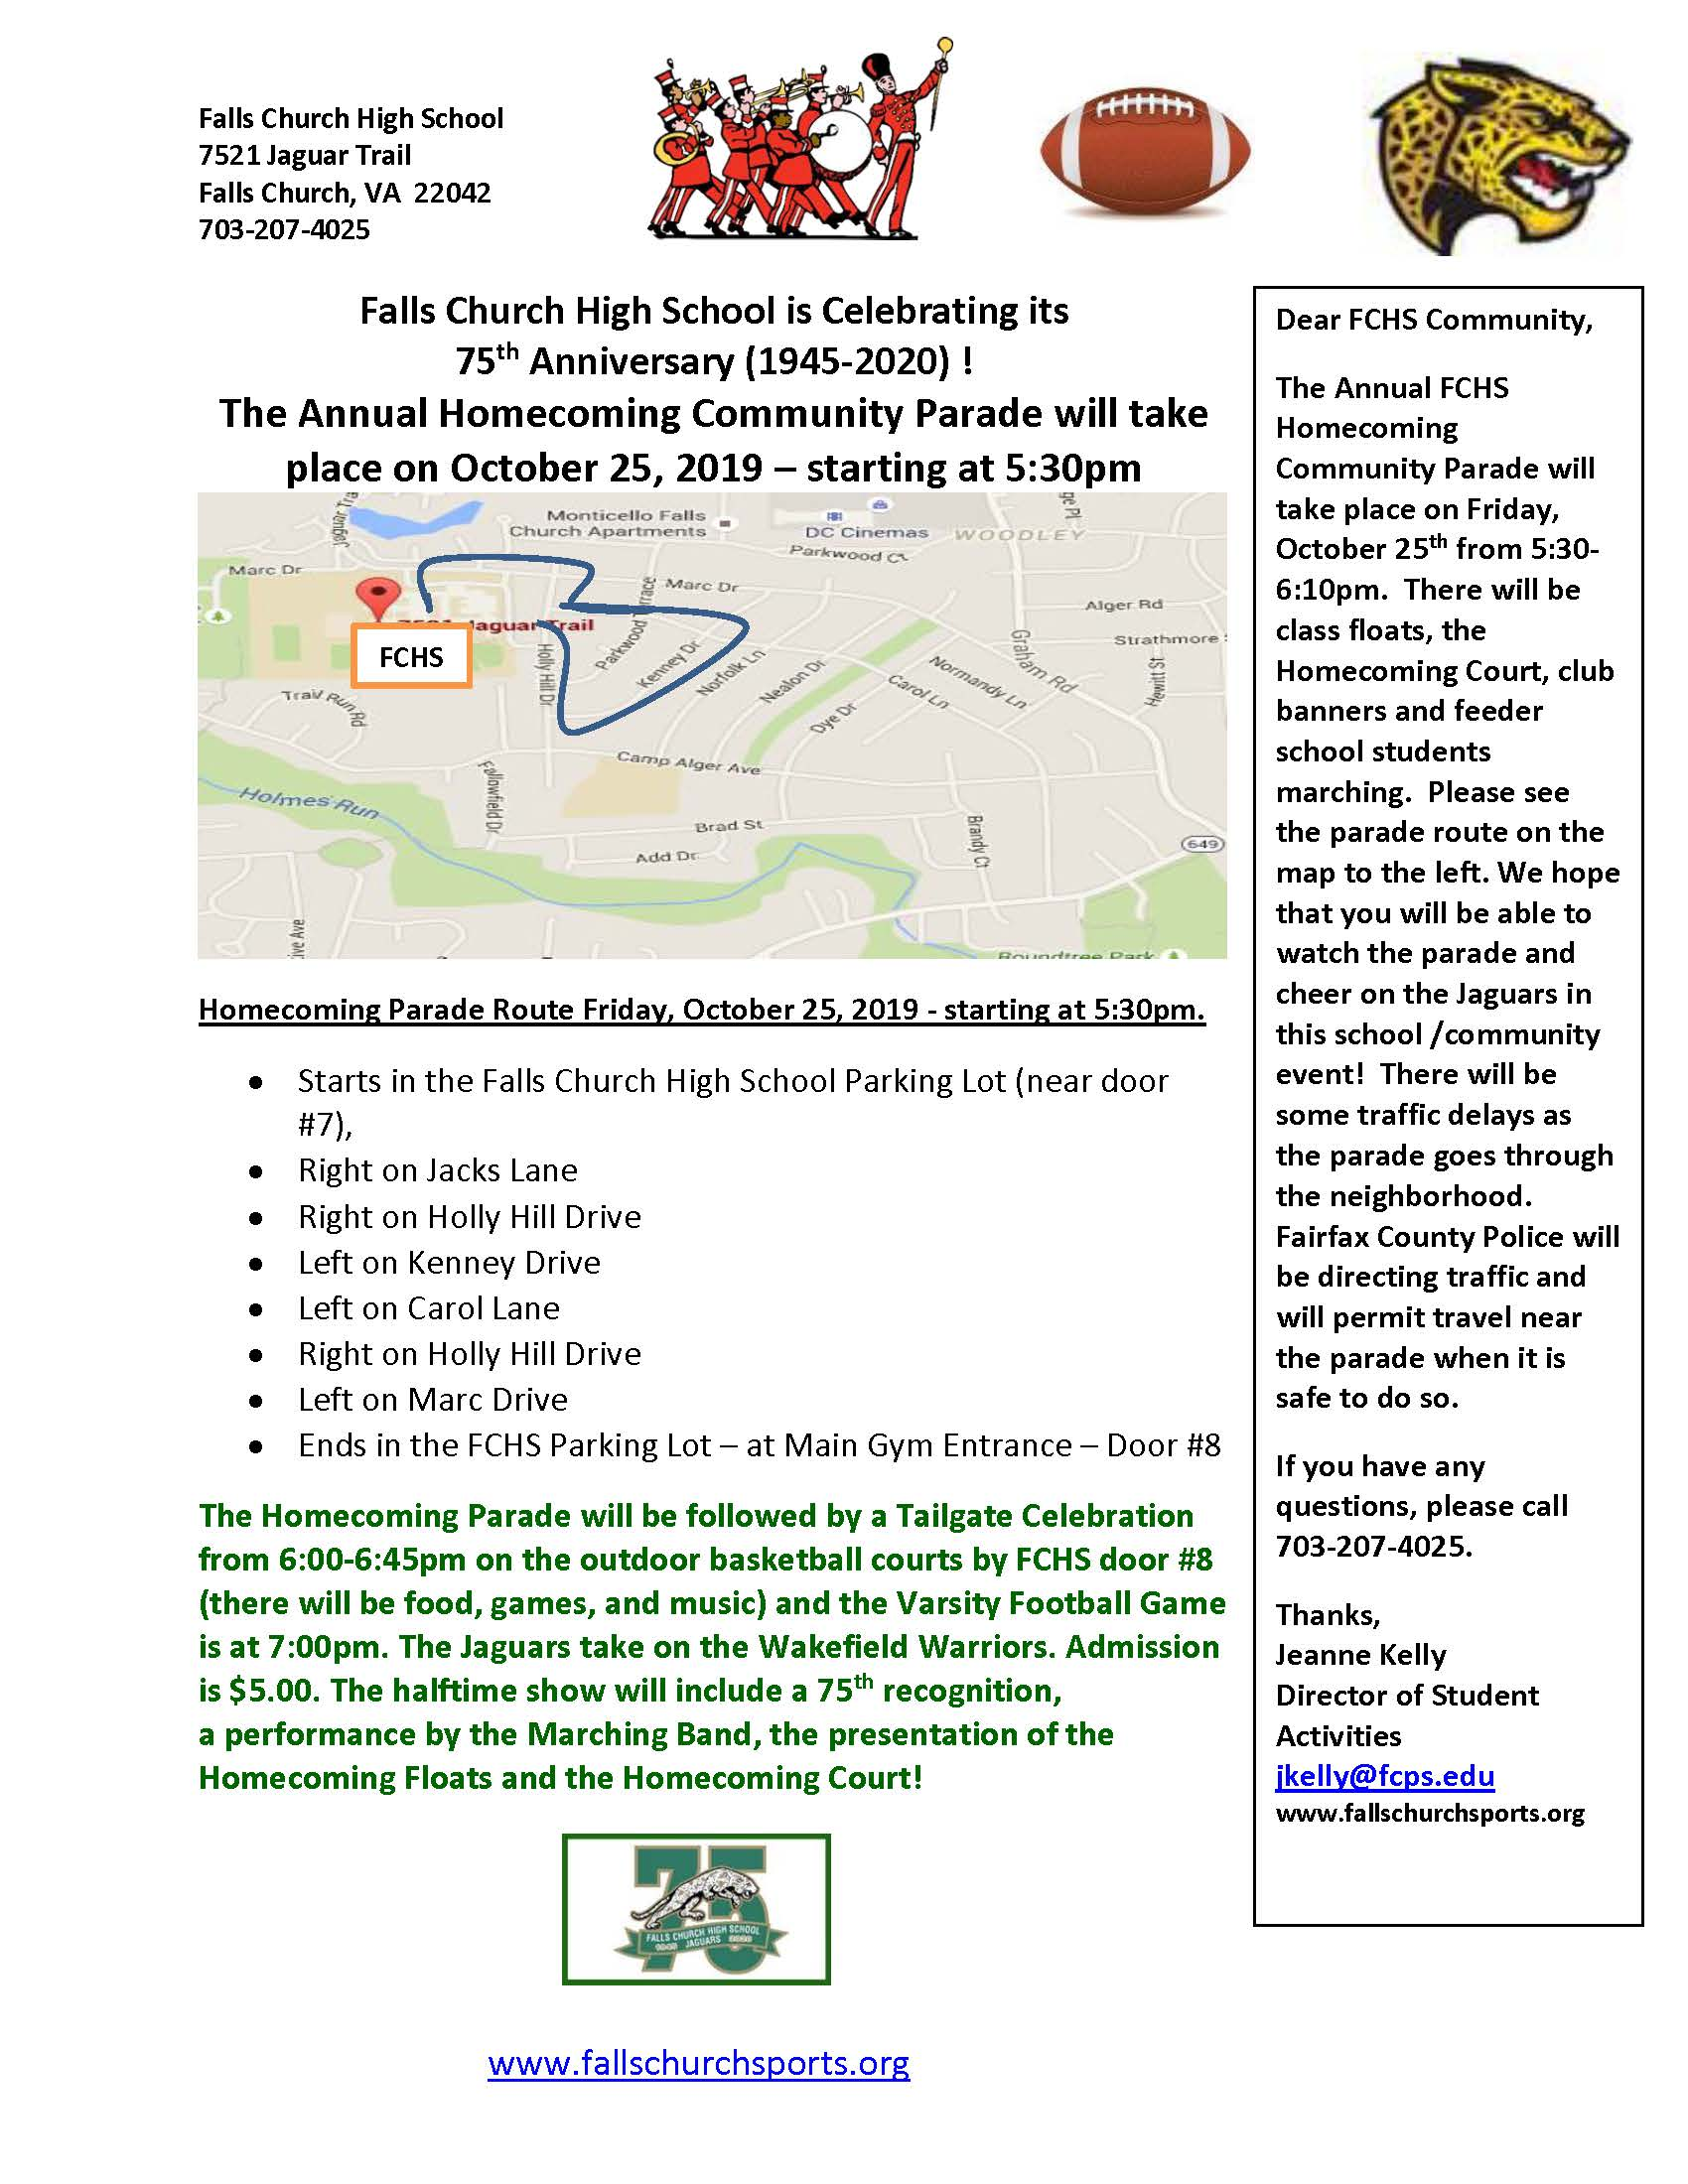 Homecoming Parade Route 2019 Community Letter